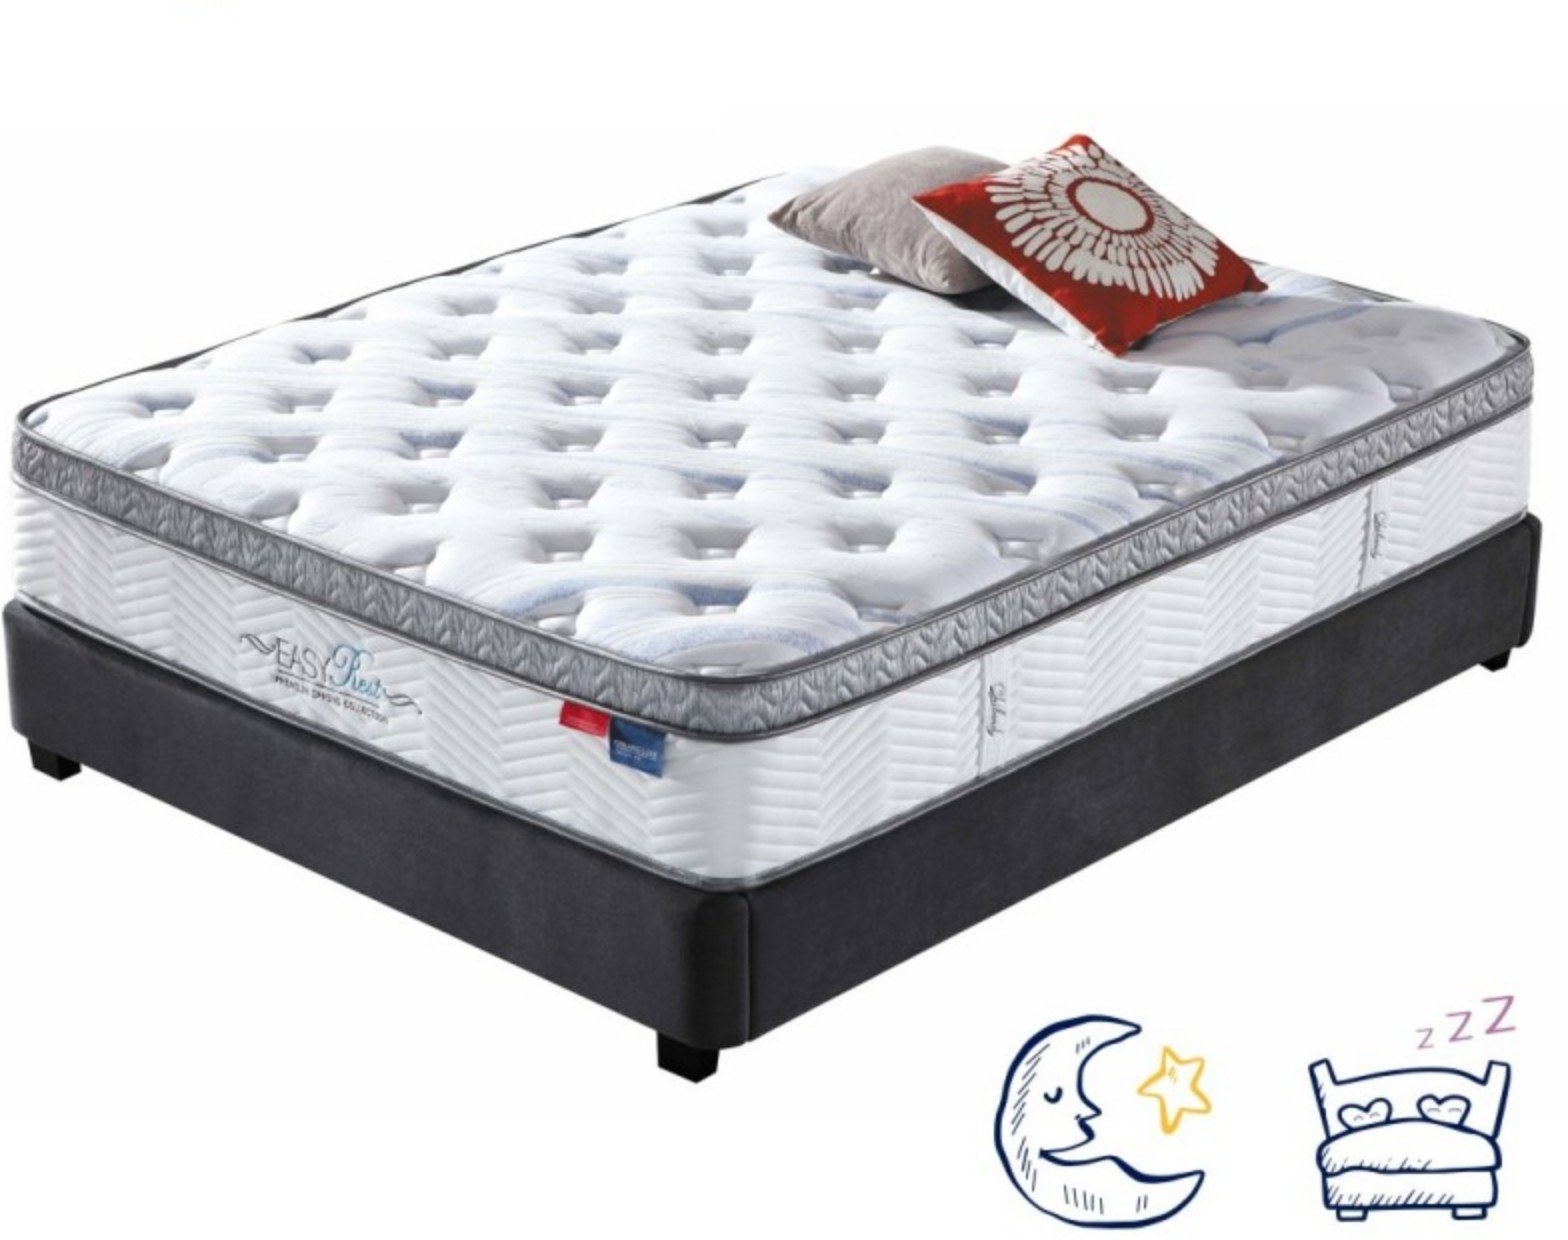 matelas m moire de forme 140x190 cm luxe eden 28cm. Black Bedroom Furniture Sets. Home Design Ideas